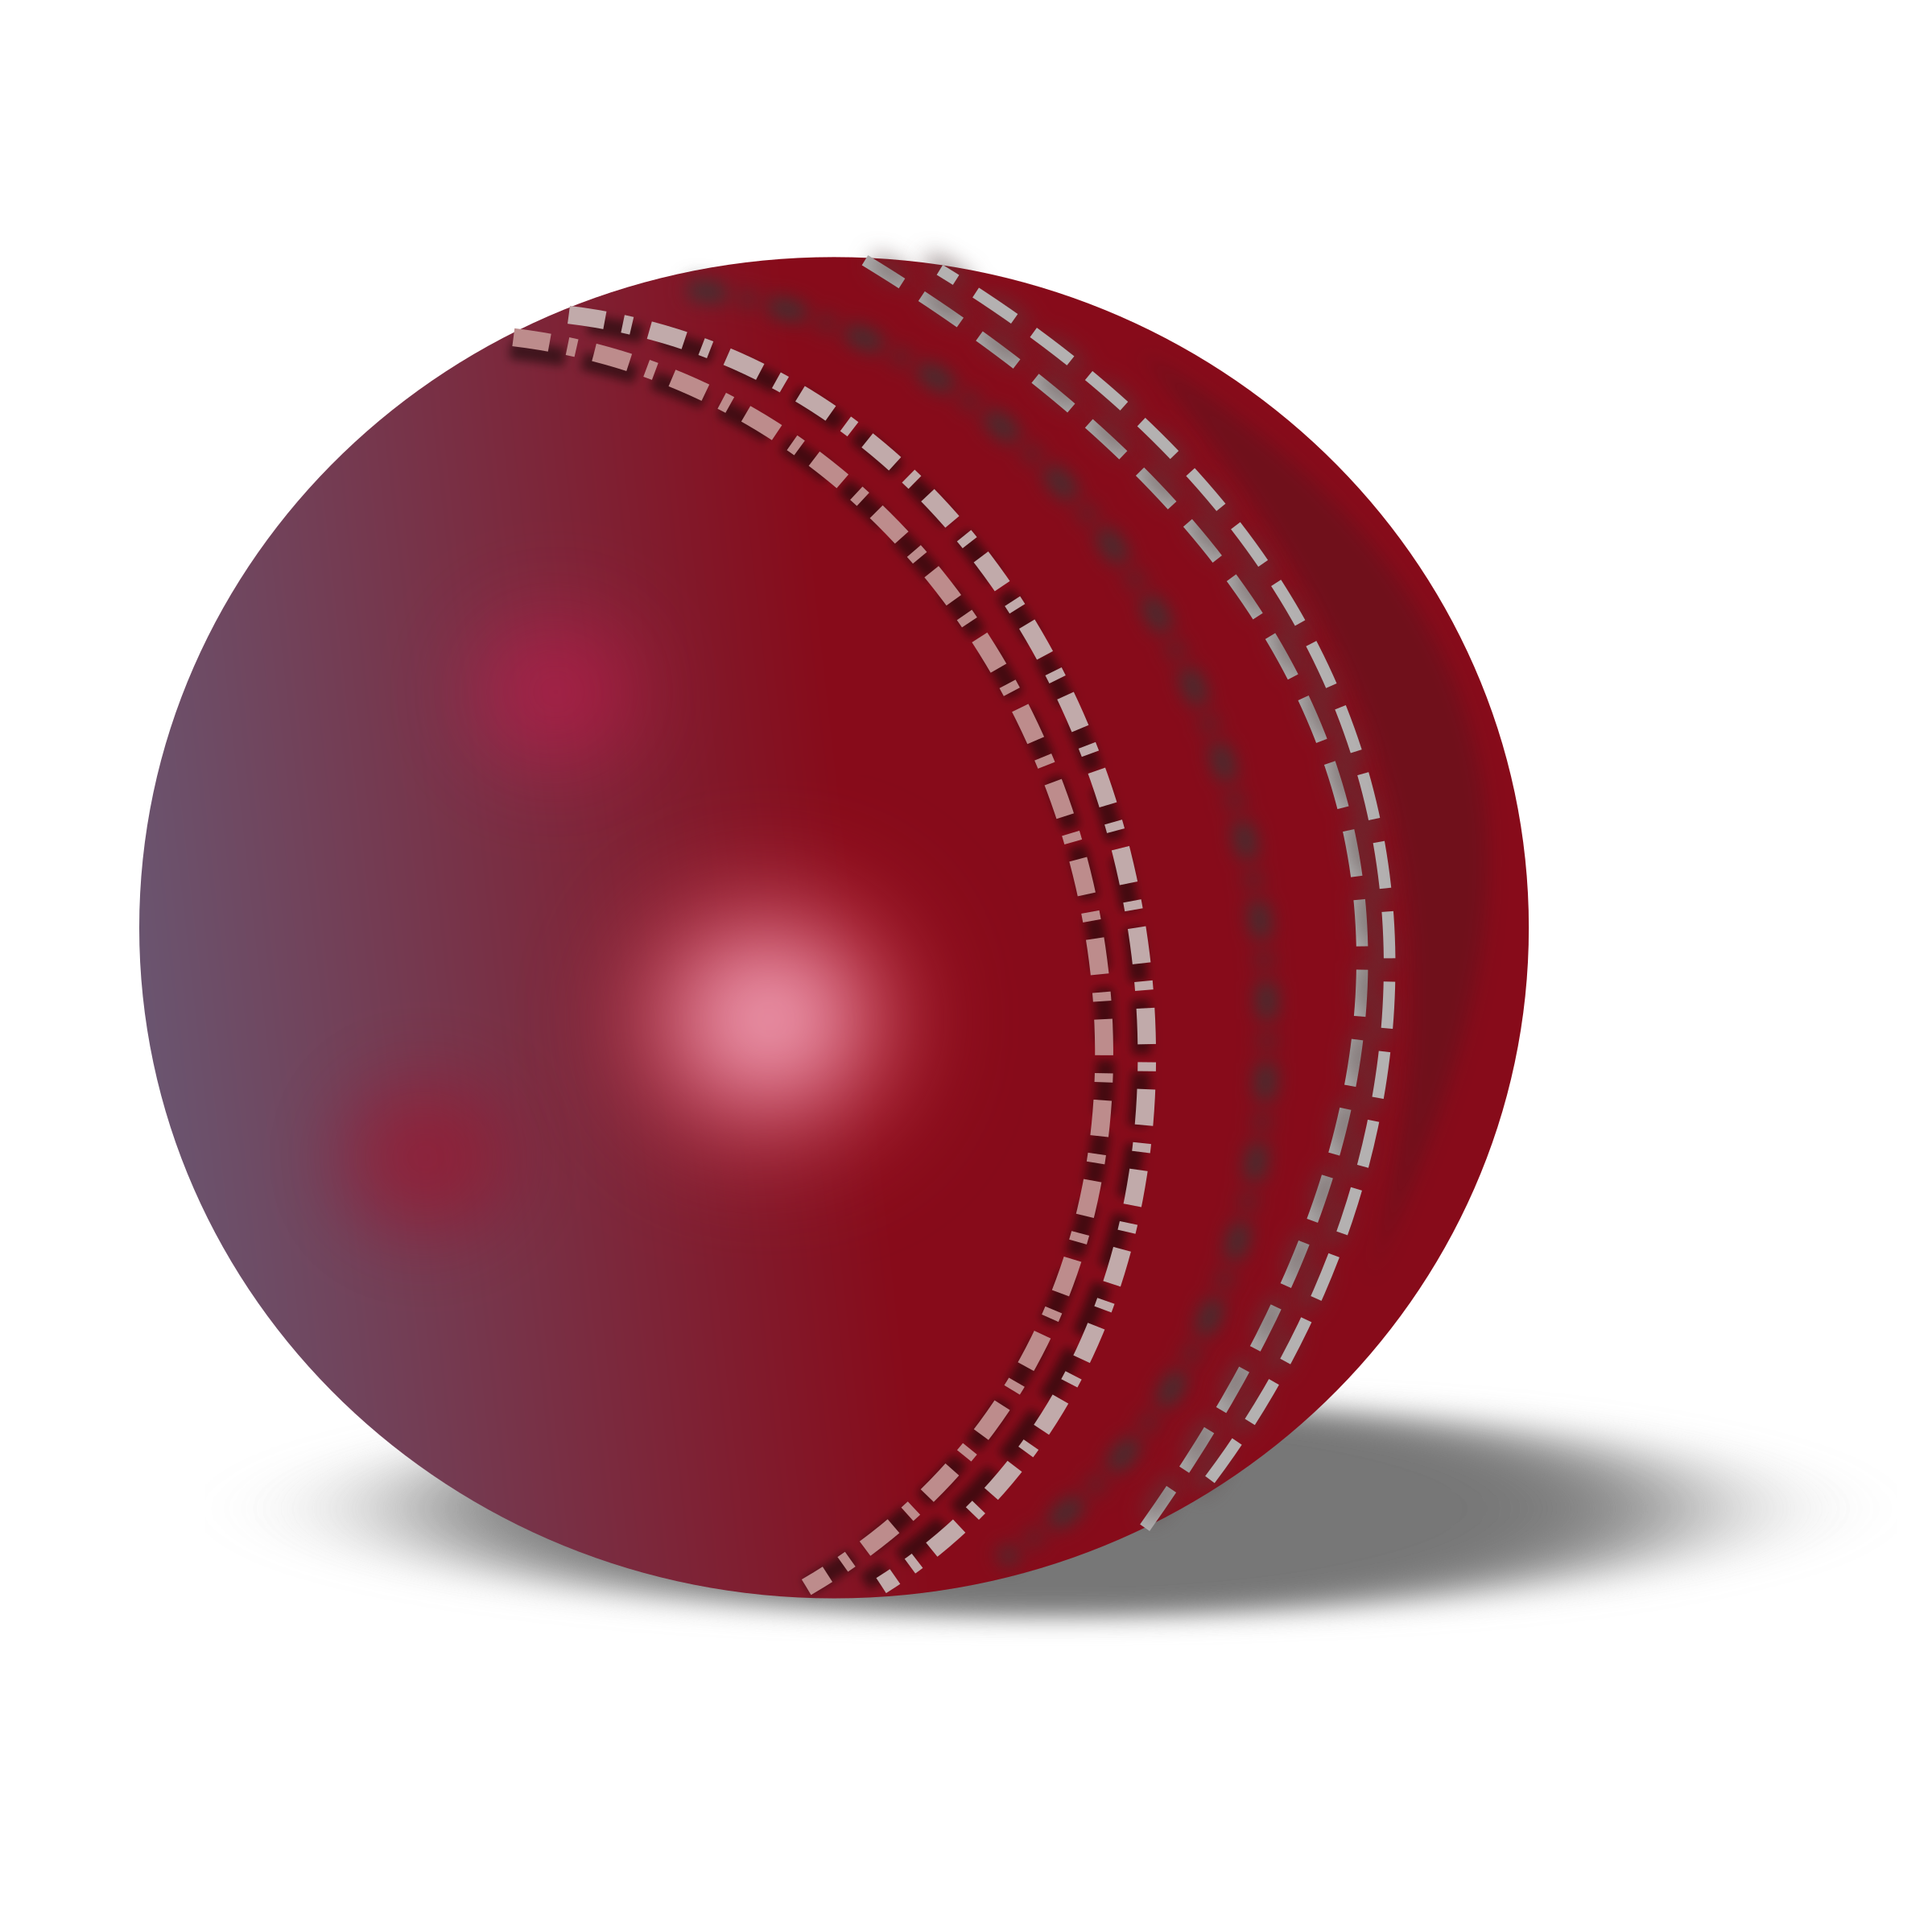 Cricket Ball Png File PNG Image - Cricket Ball PNG HD